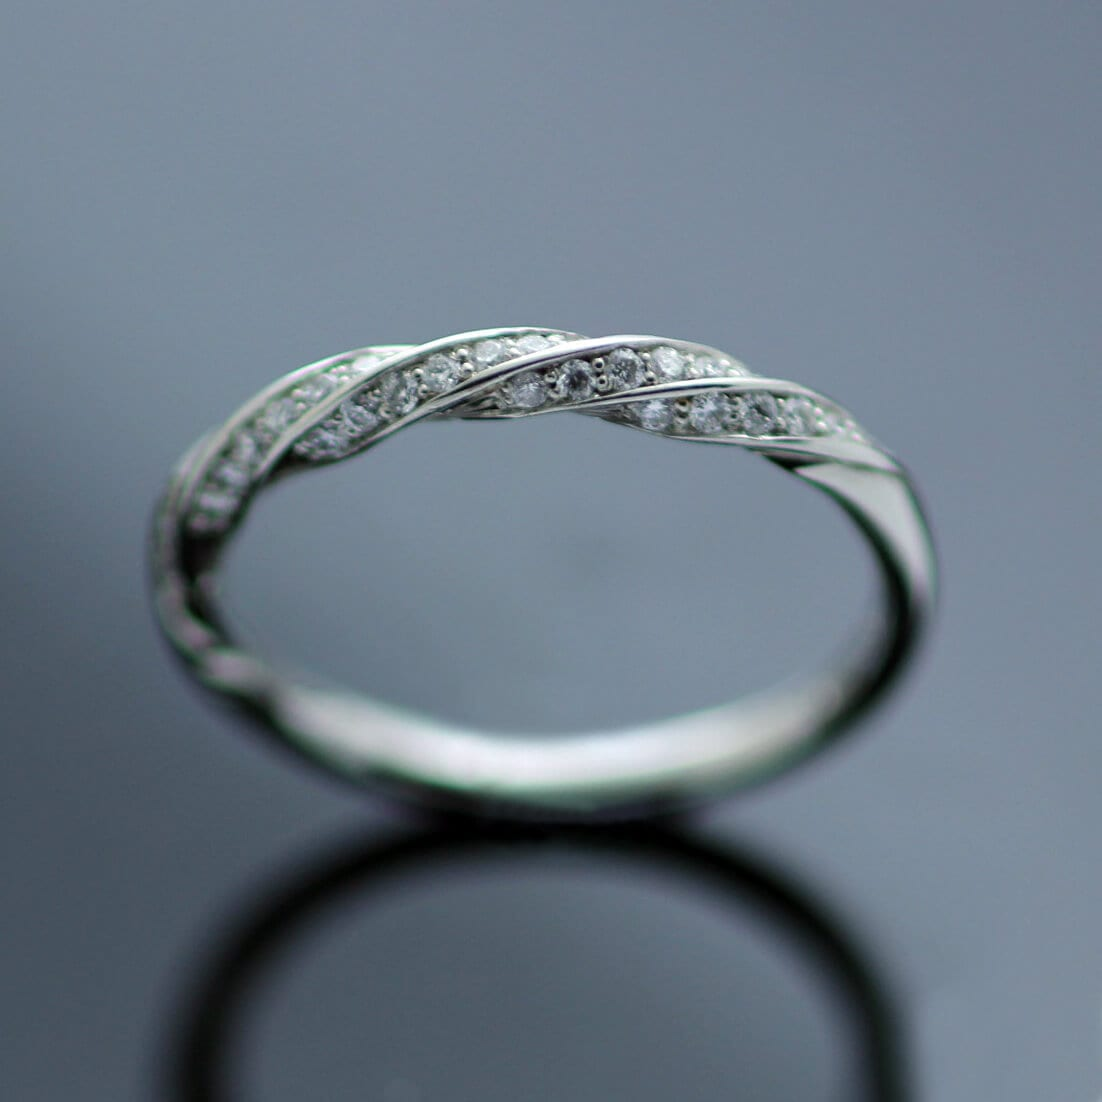 Handcrafted Platinum Diamond Half Eternity band unique design